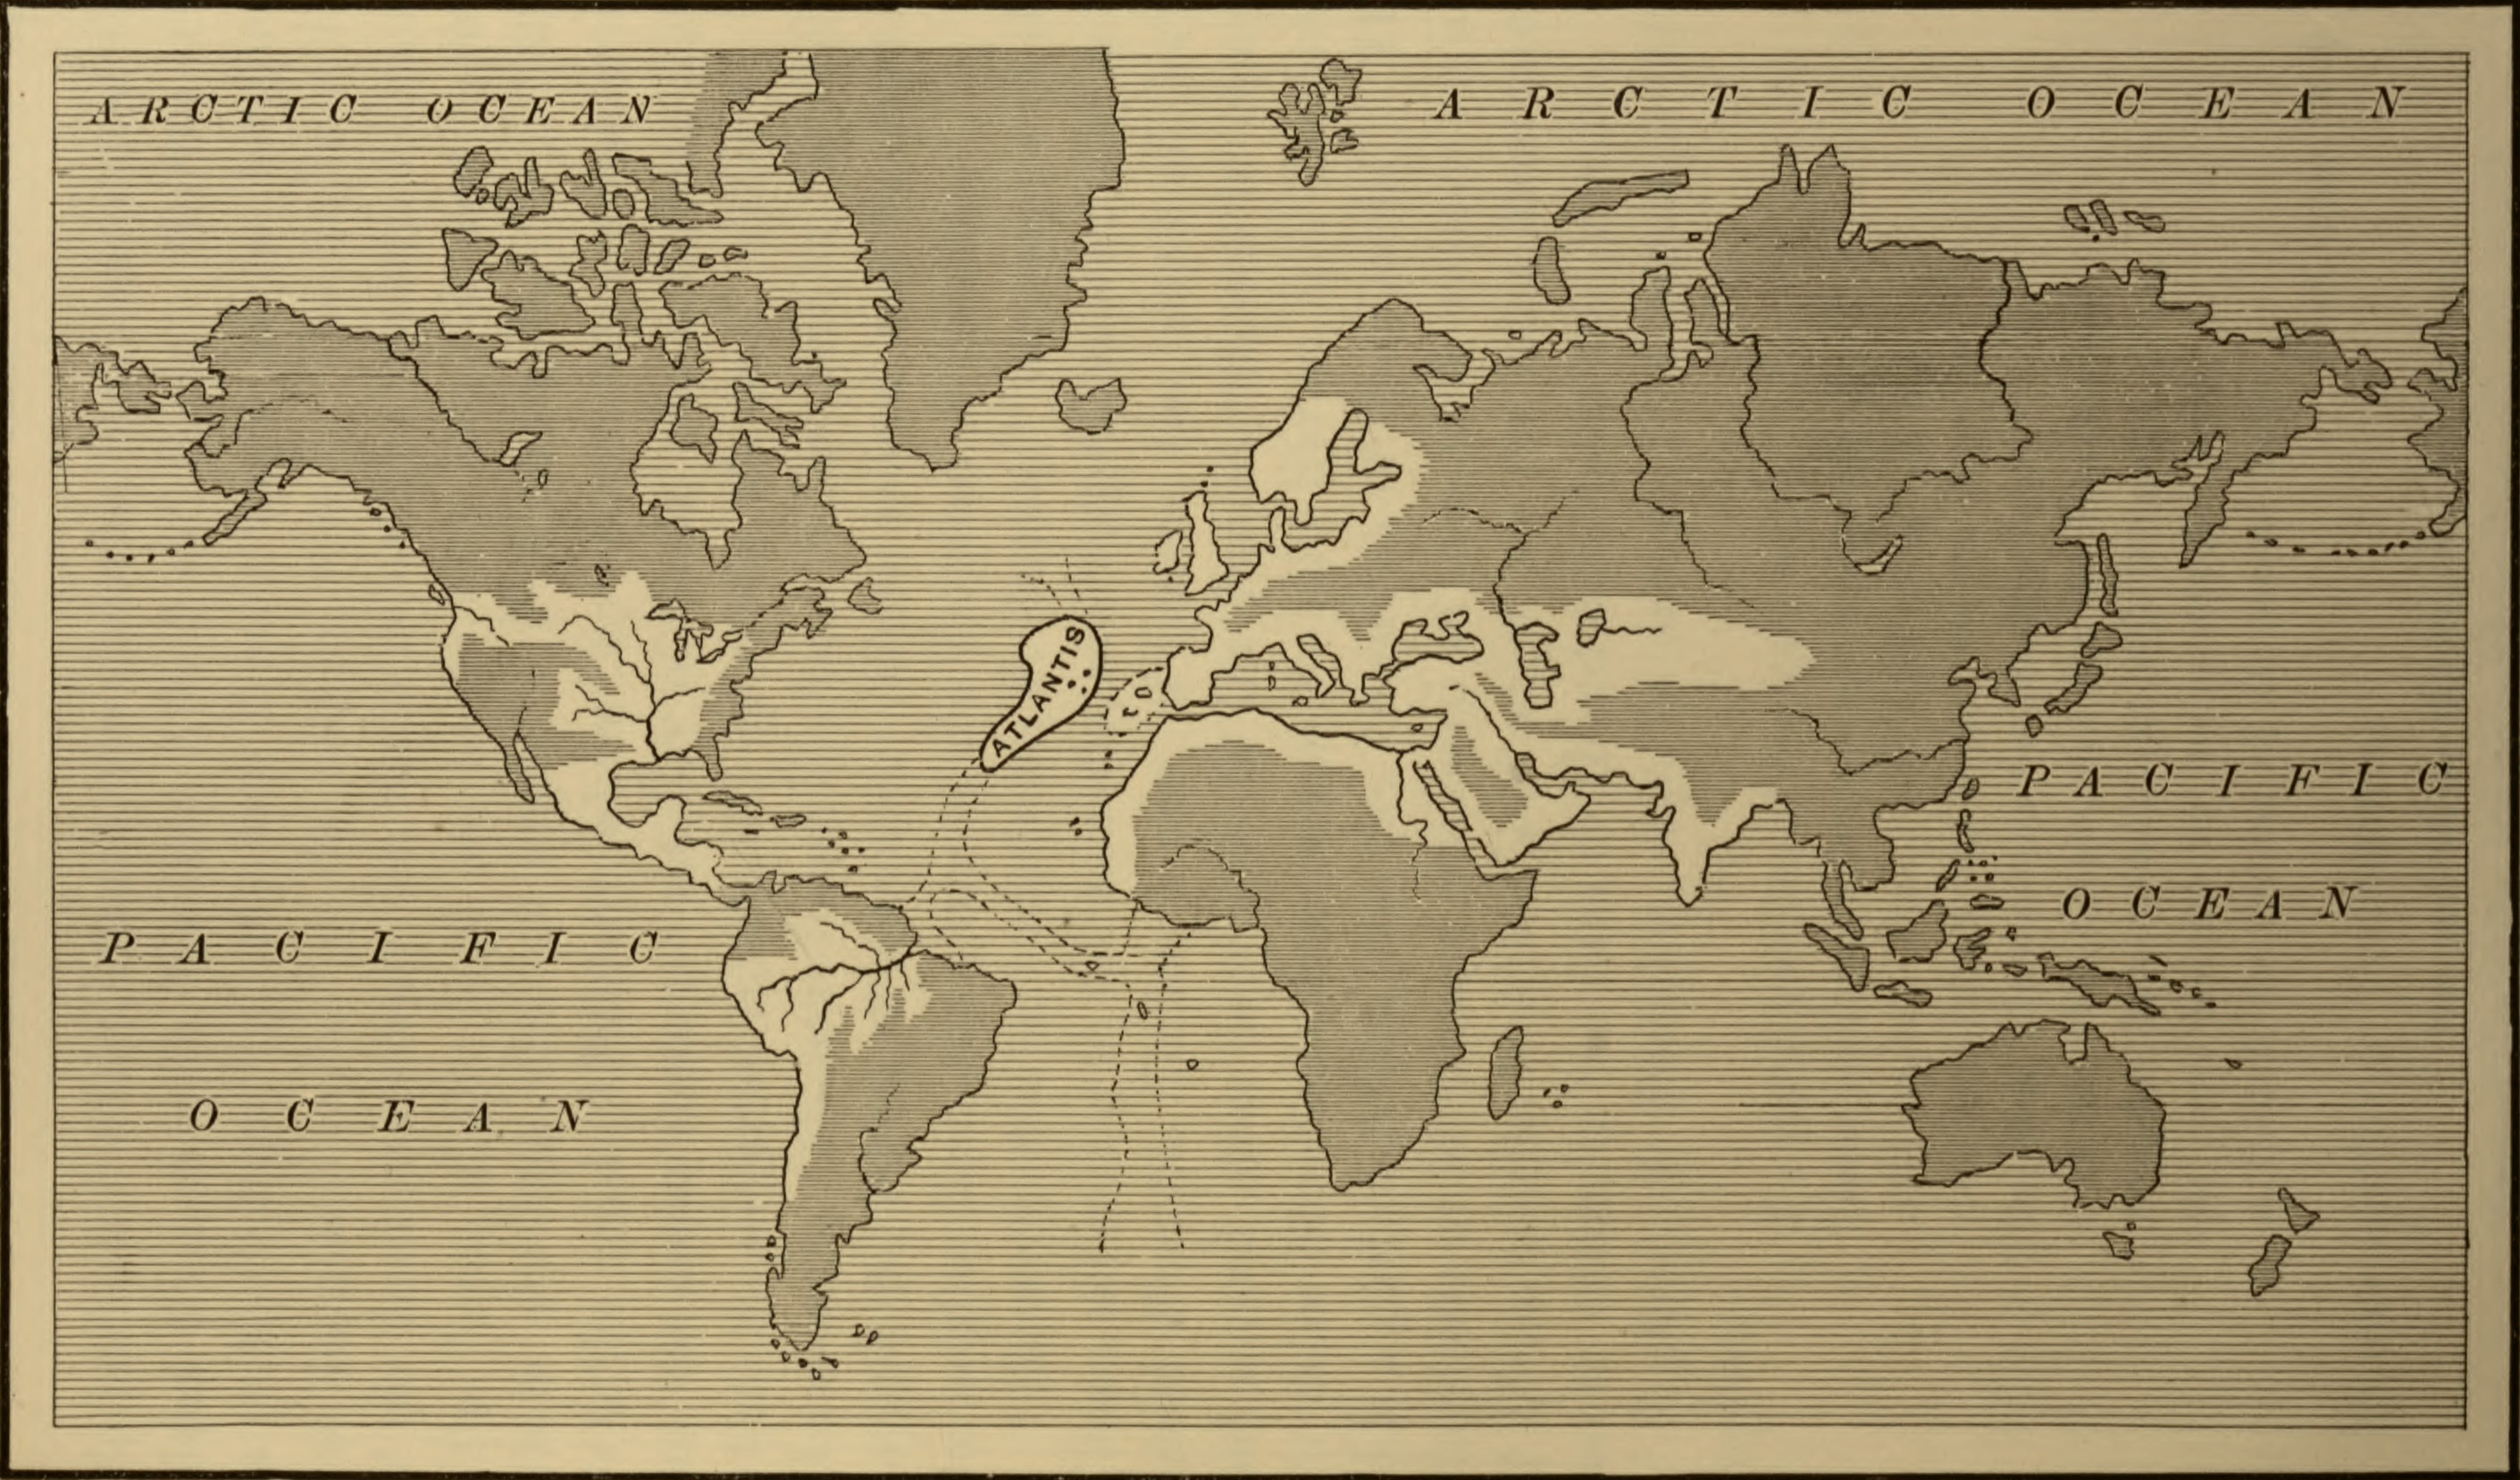 http://upload.wikimedia.org/wikipedia/commons/3/35/Atlantis_map_1882_crop.jpg